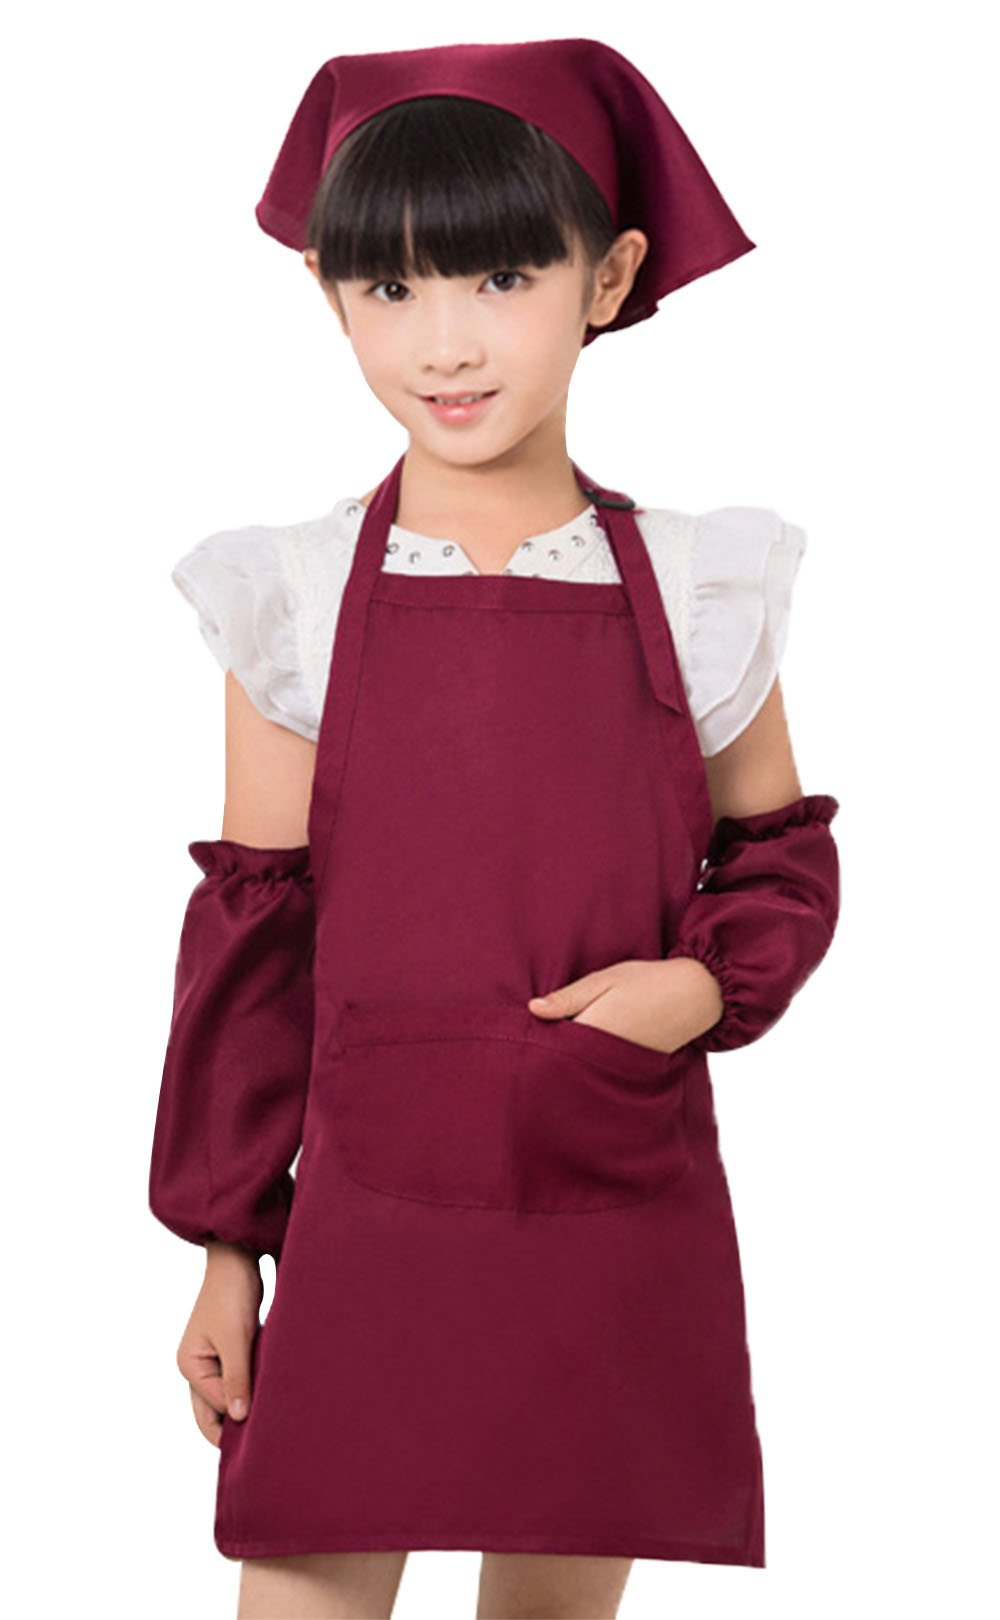 Happy Cherry Colorful Artist Painting Aprons for Kids with 2 Pockets & Sleevelet & Headkerchief Anti Dirty Size M - Red